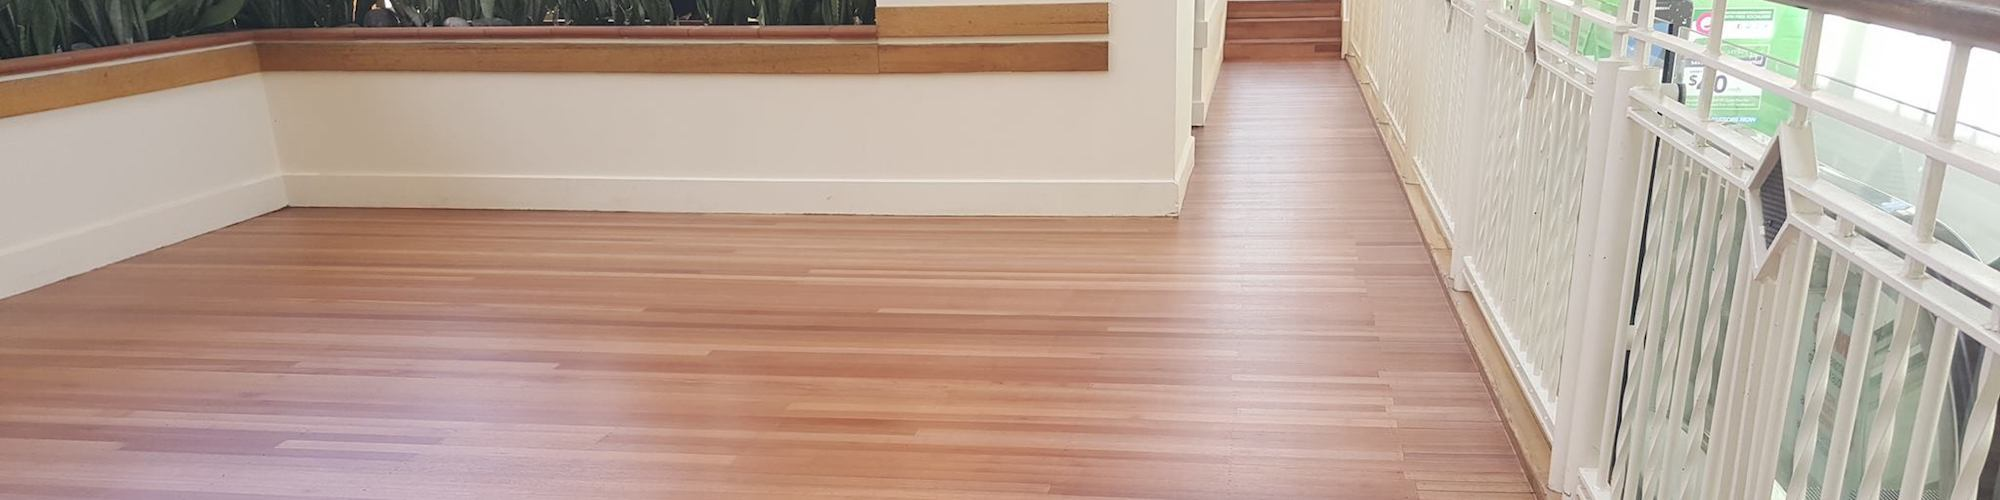 What Is The Purpose Of Flooring Auckland